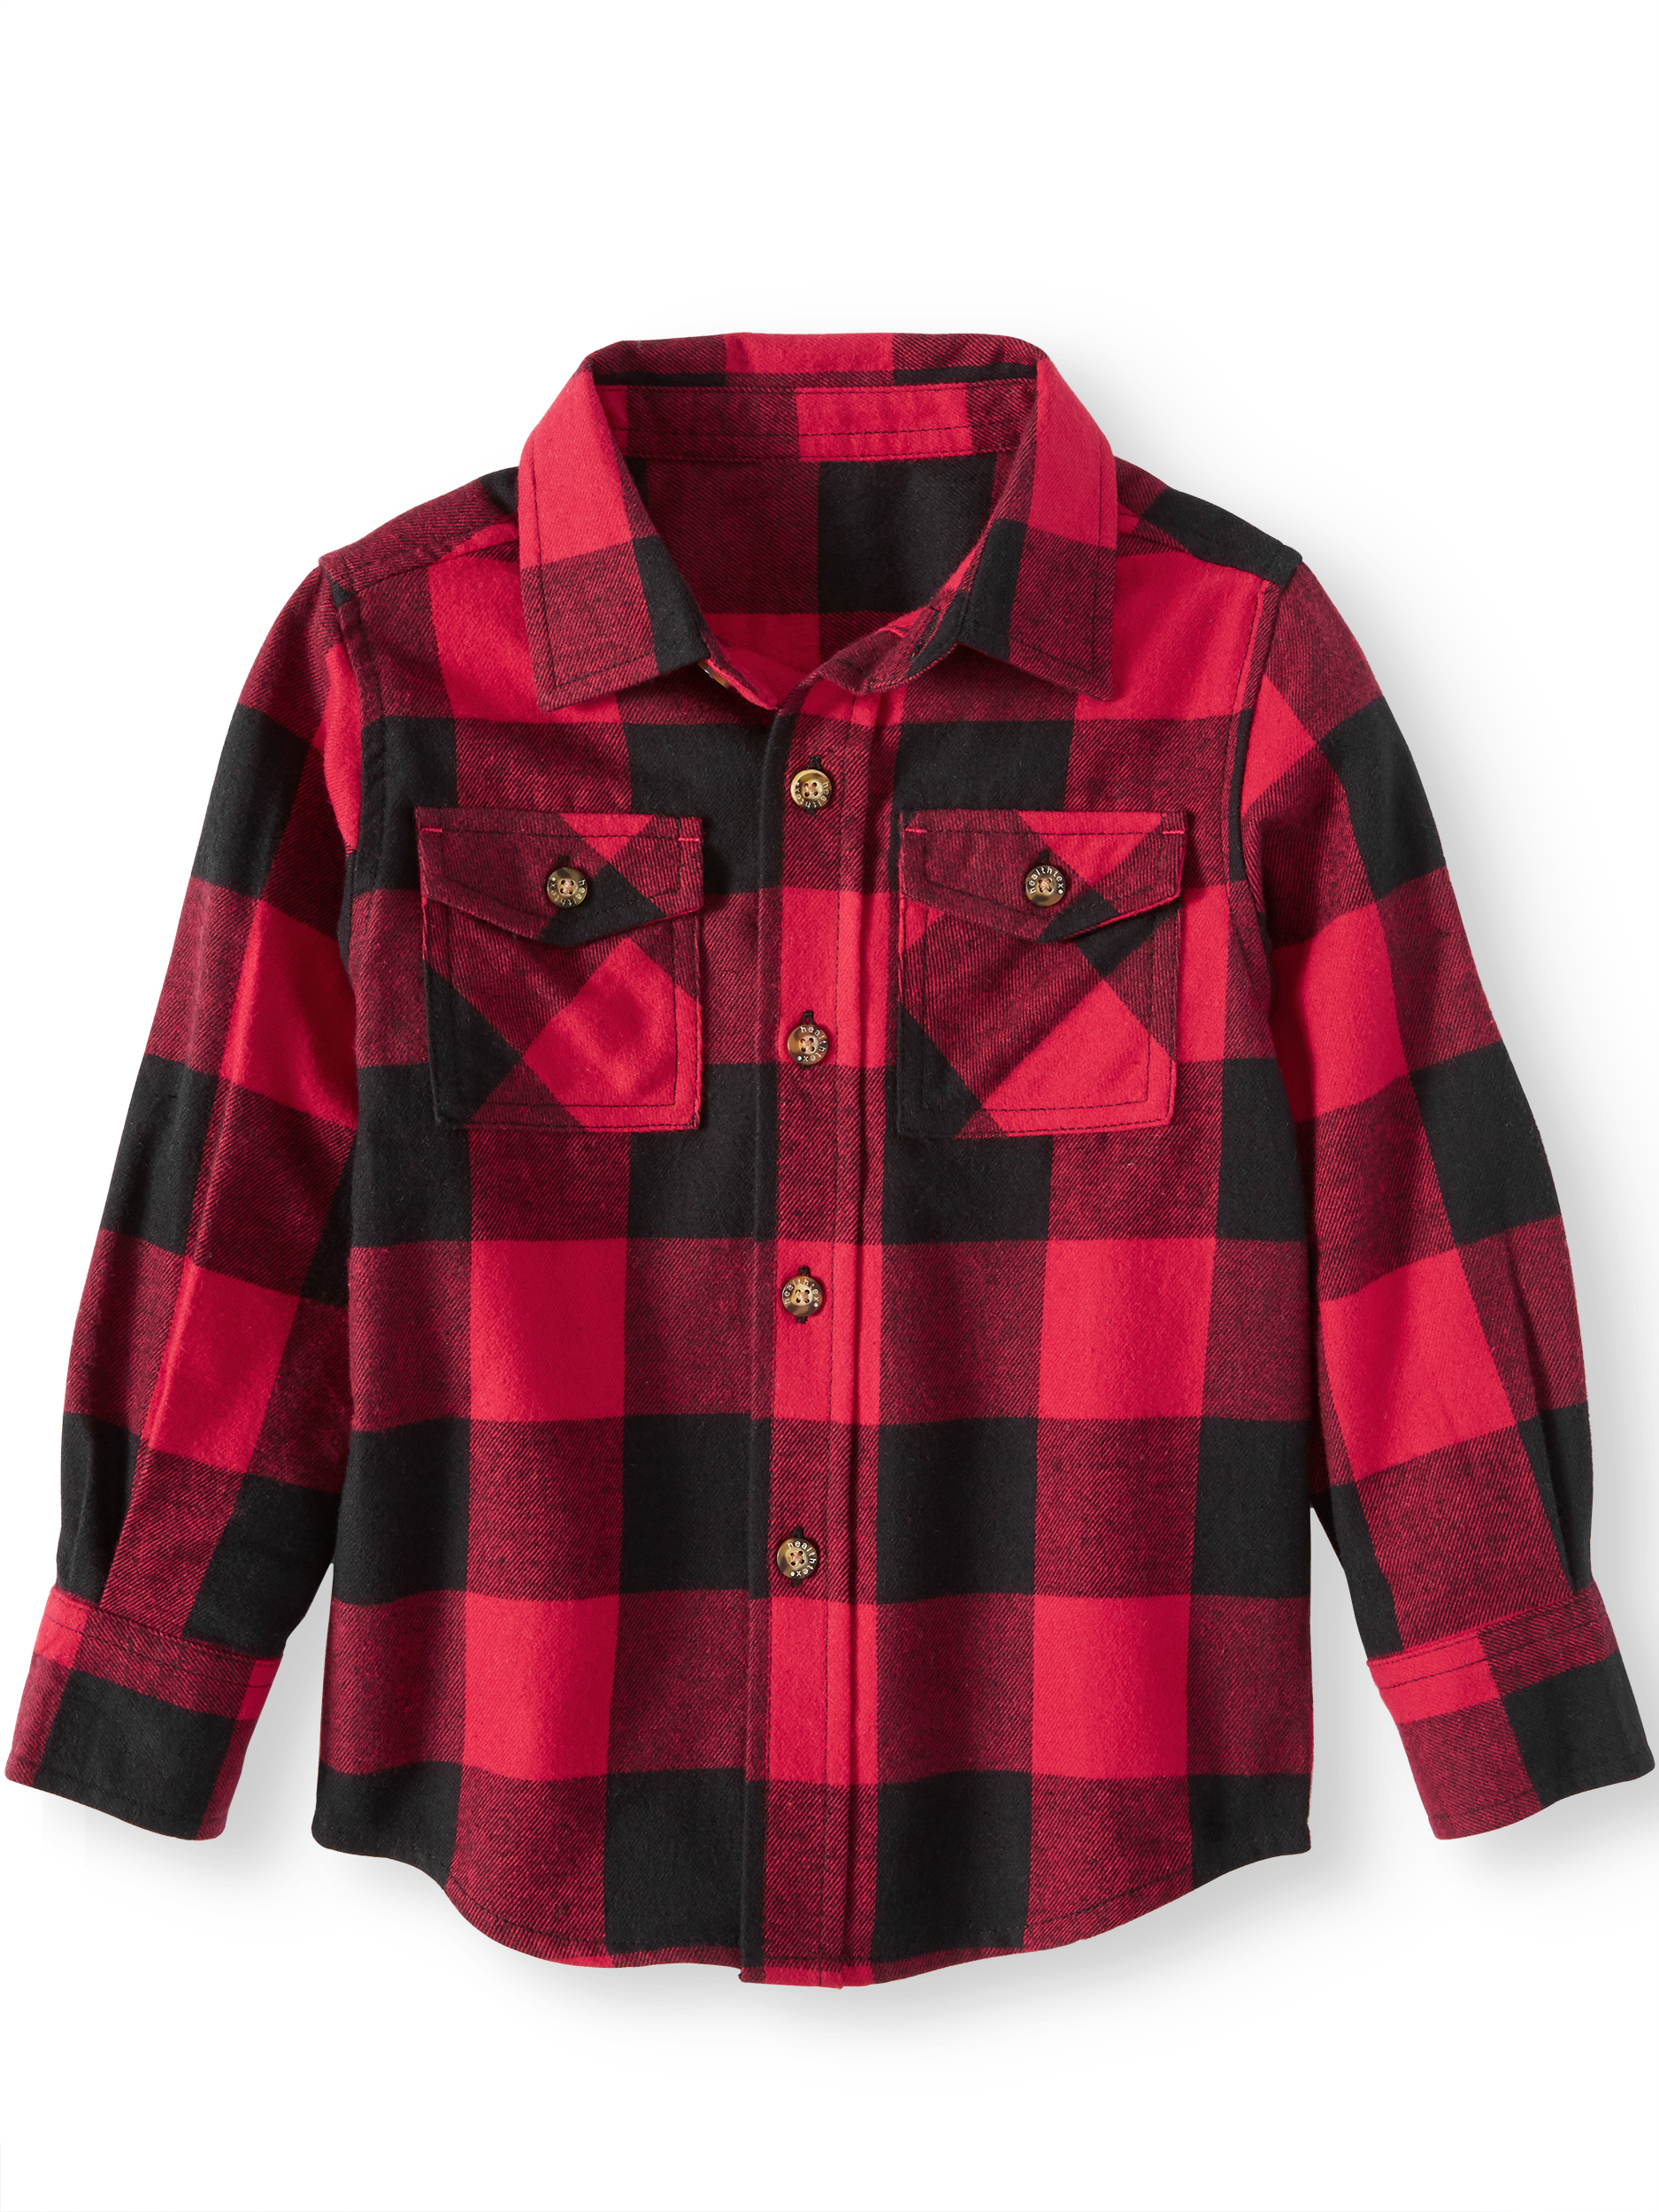 Long Sleeve Flannel Button Up Shirt (Toddler Boys)